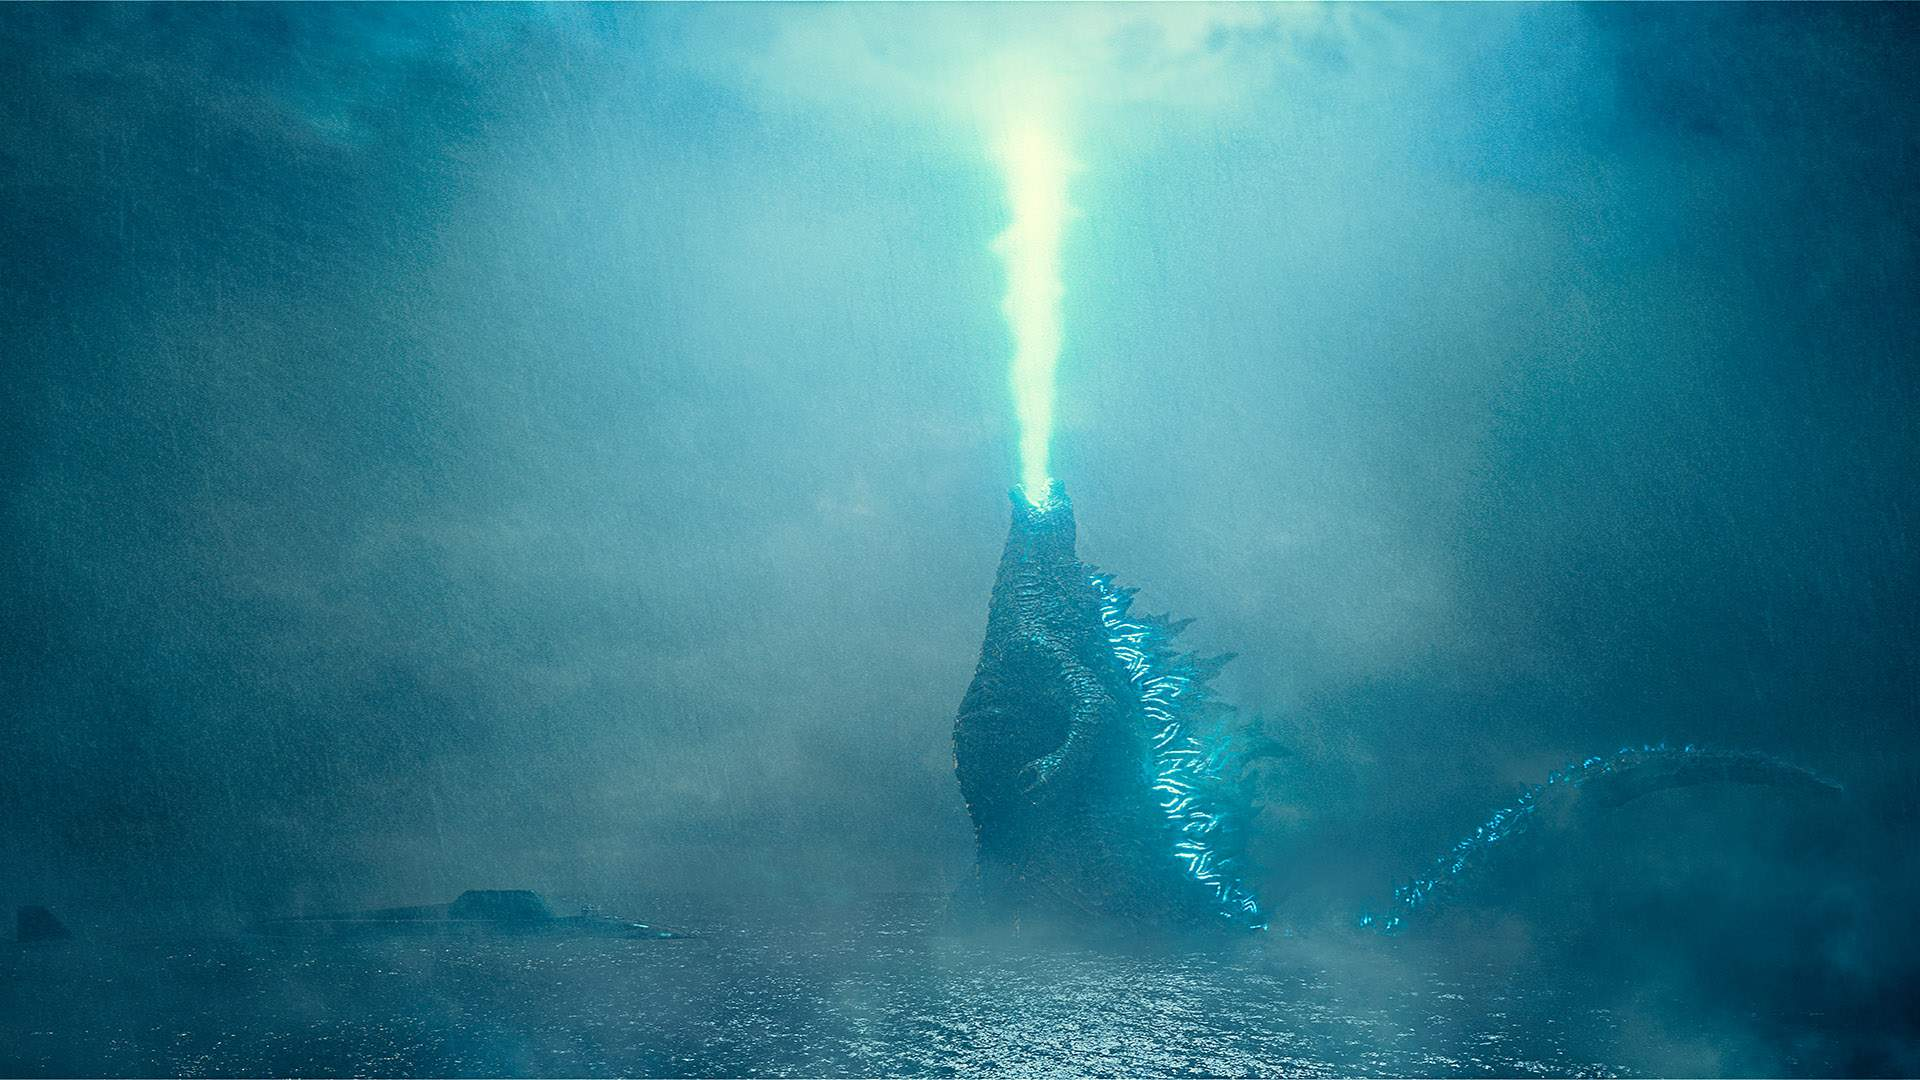 The New 'Godzilla: King of the Monsters' Trailer Is Here with Plenty of Creature Feature Mayhem